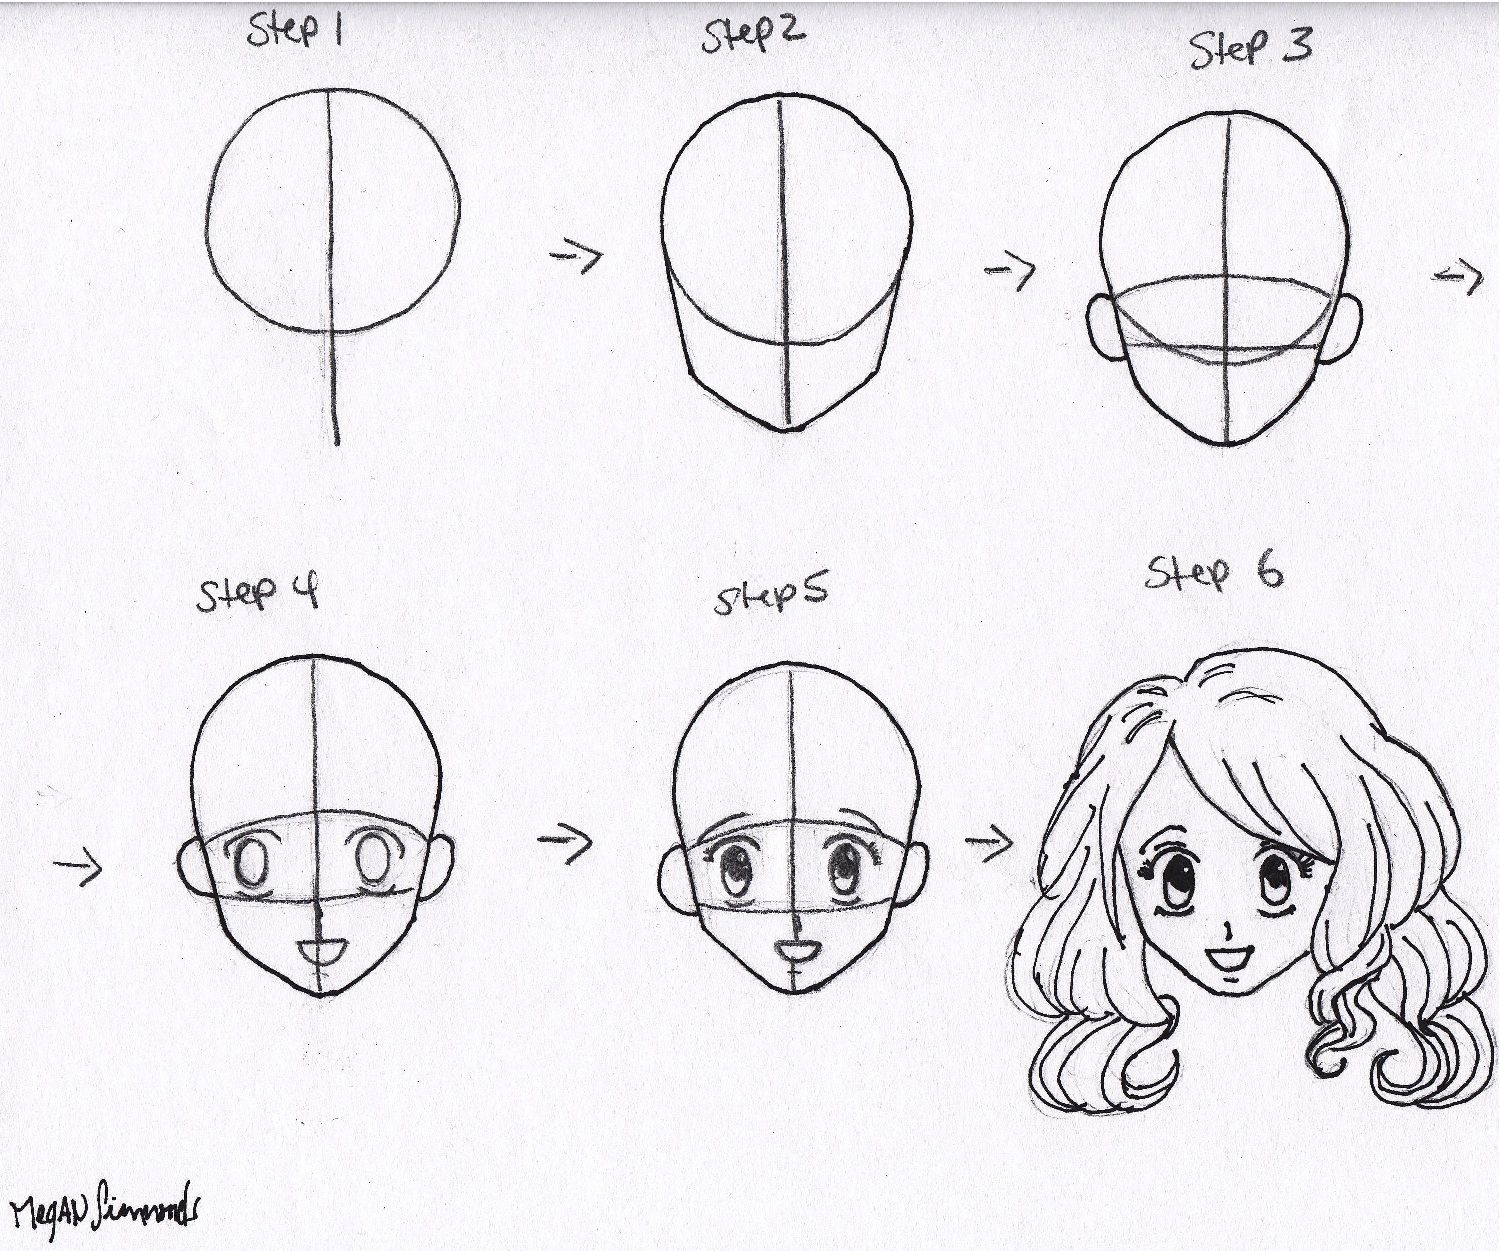 How To Draw Manga Face Profile Full Step Tutorial How To Draw Anime And Manga Tutorial Anime Face Drawing Anime Drawings Tutorials How To Draw Anime Eyes